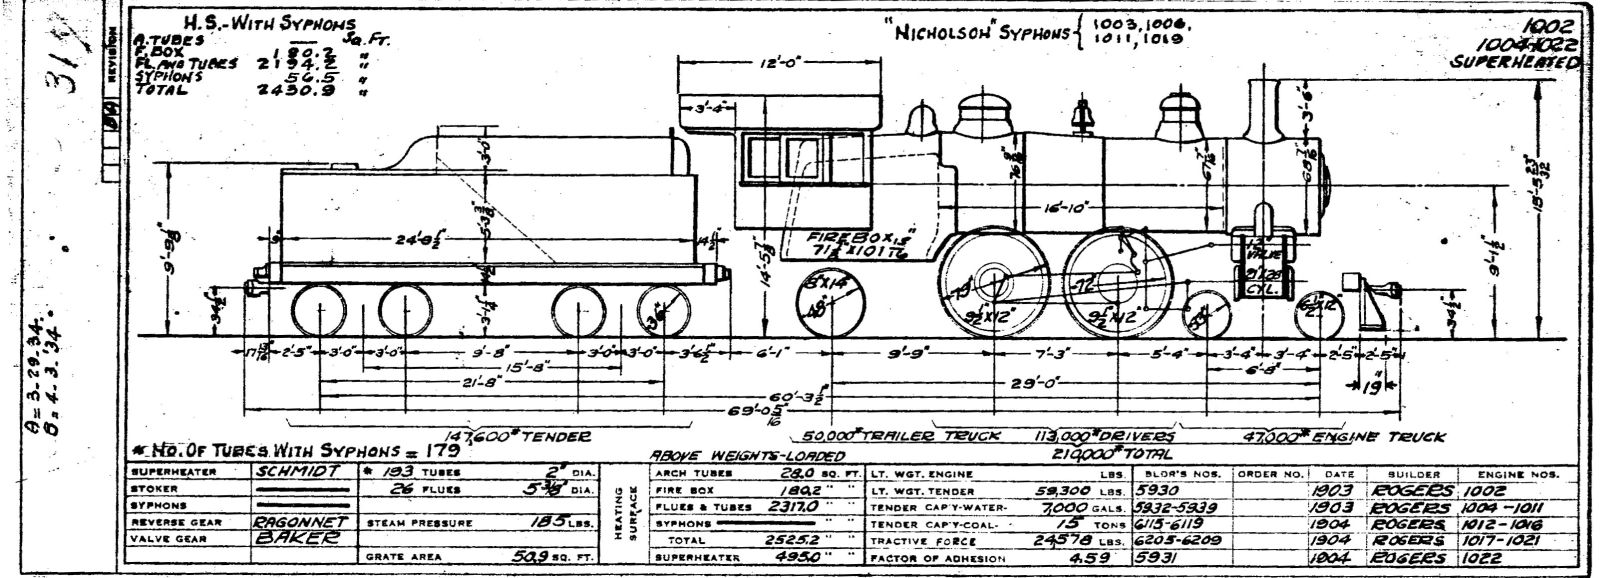 Illinois Central 1937 Locomotive Diagrams – Locomotive Engine Diagram Simple